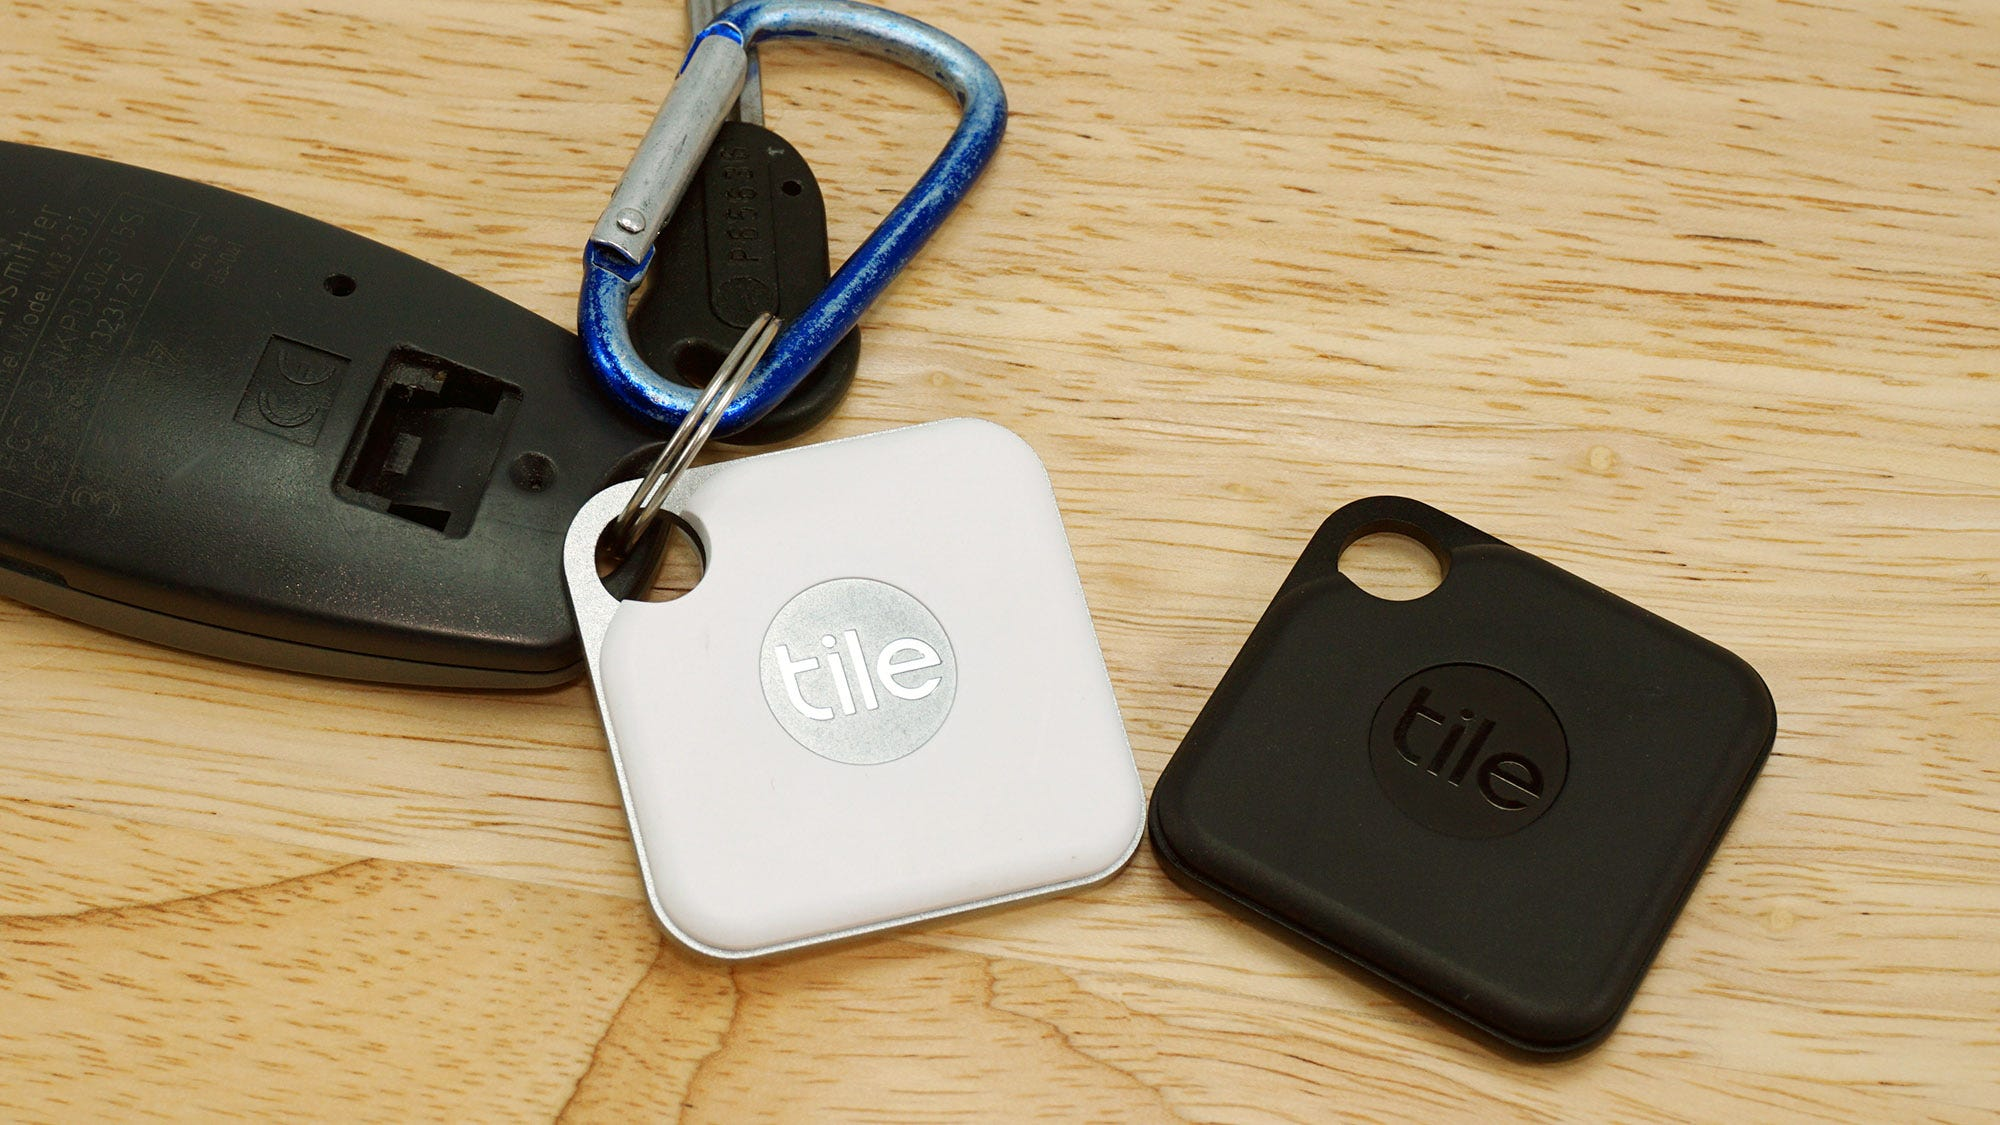 The Tile Pro in white and black, with garage keys.